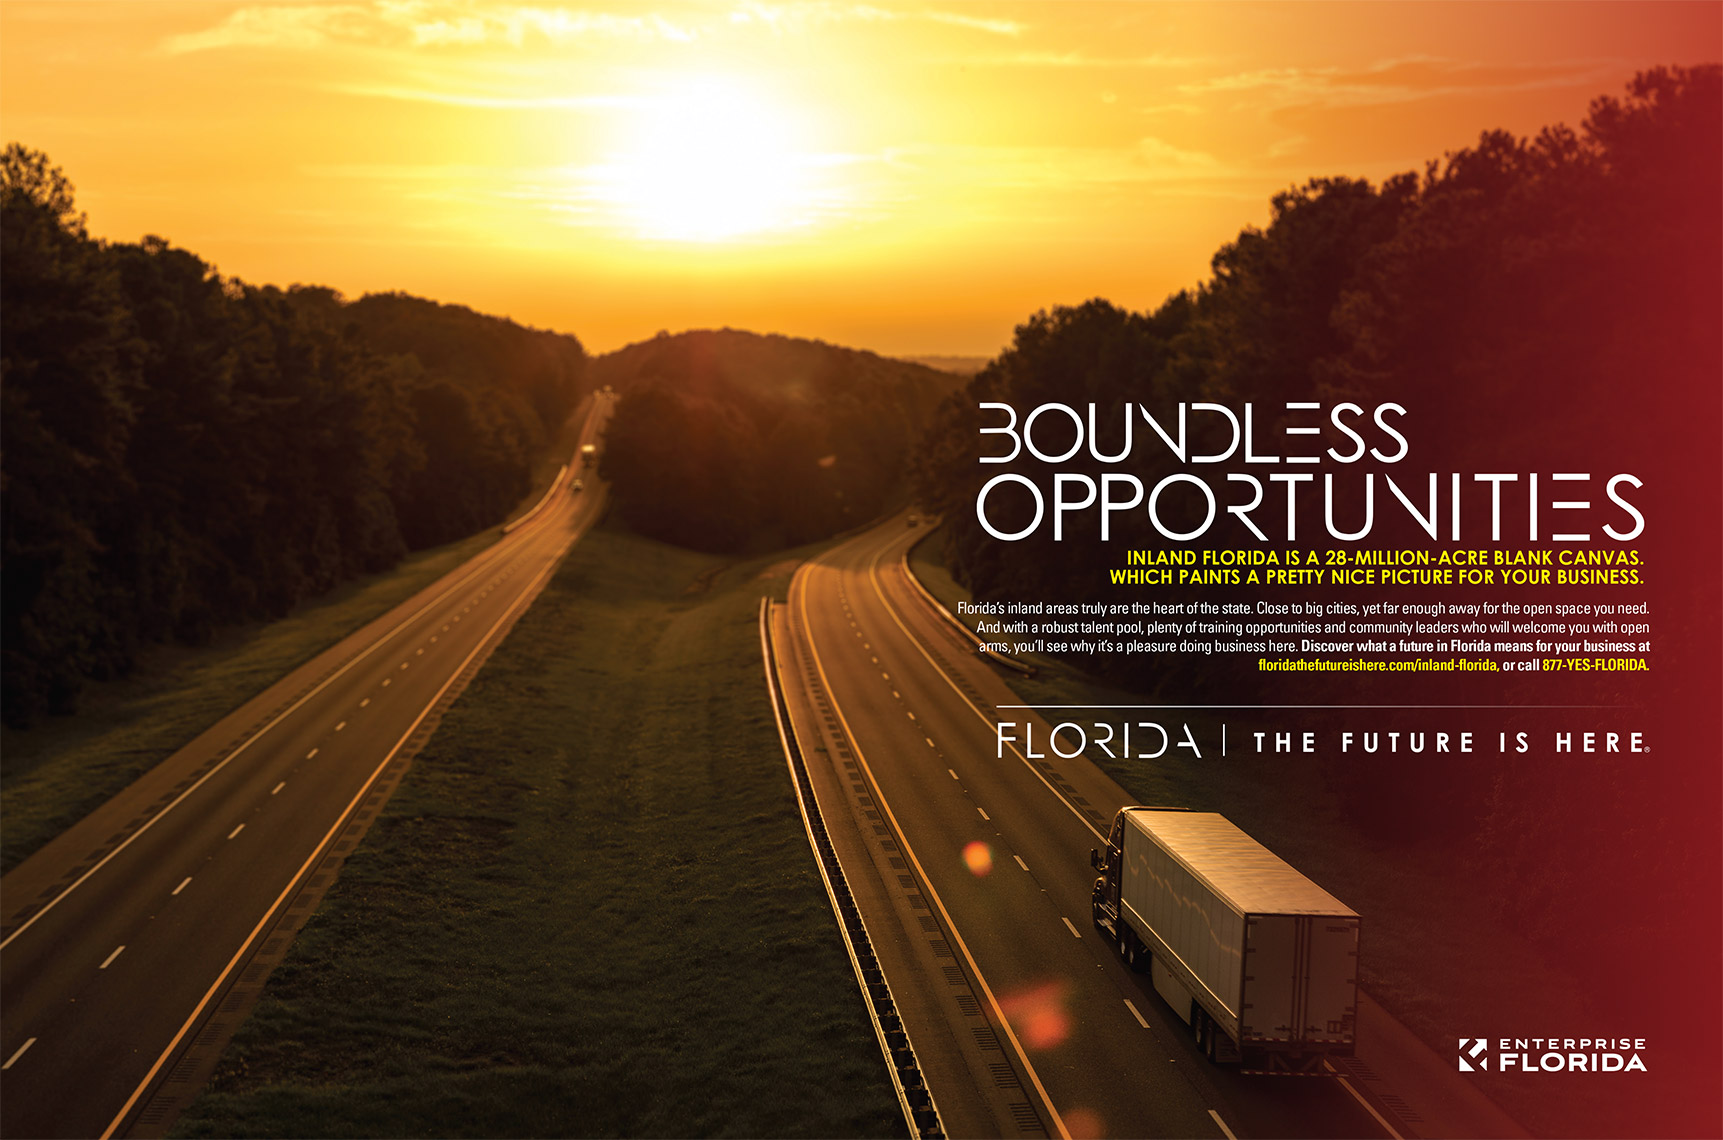 Boundless Opportunities Enterprise Florida